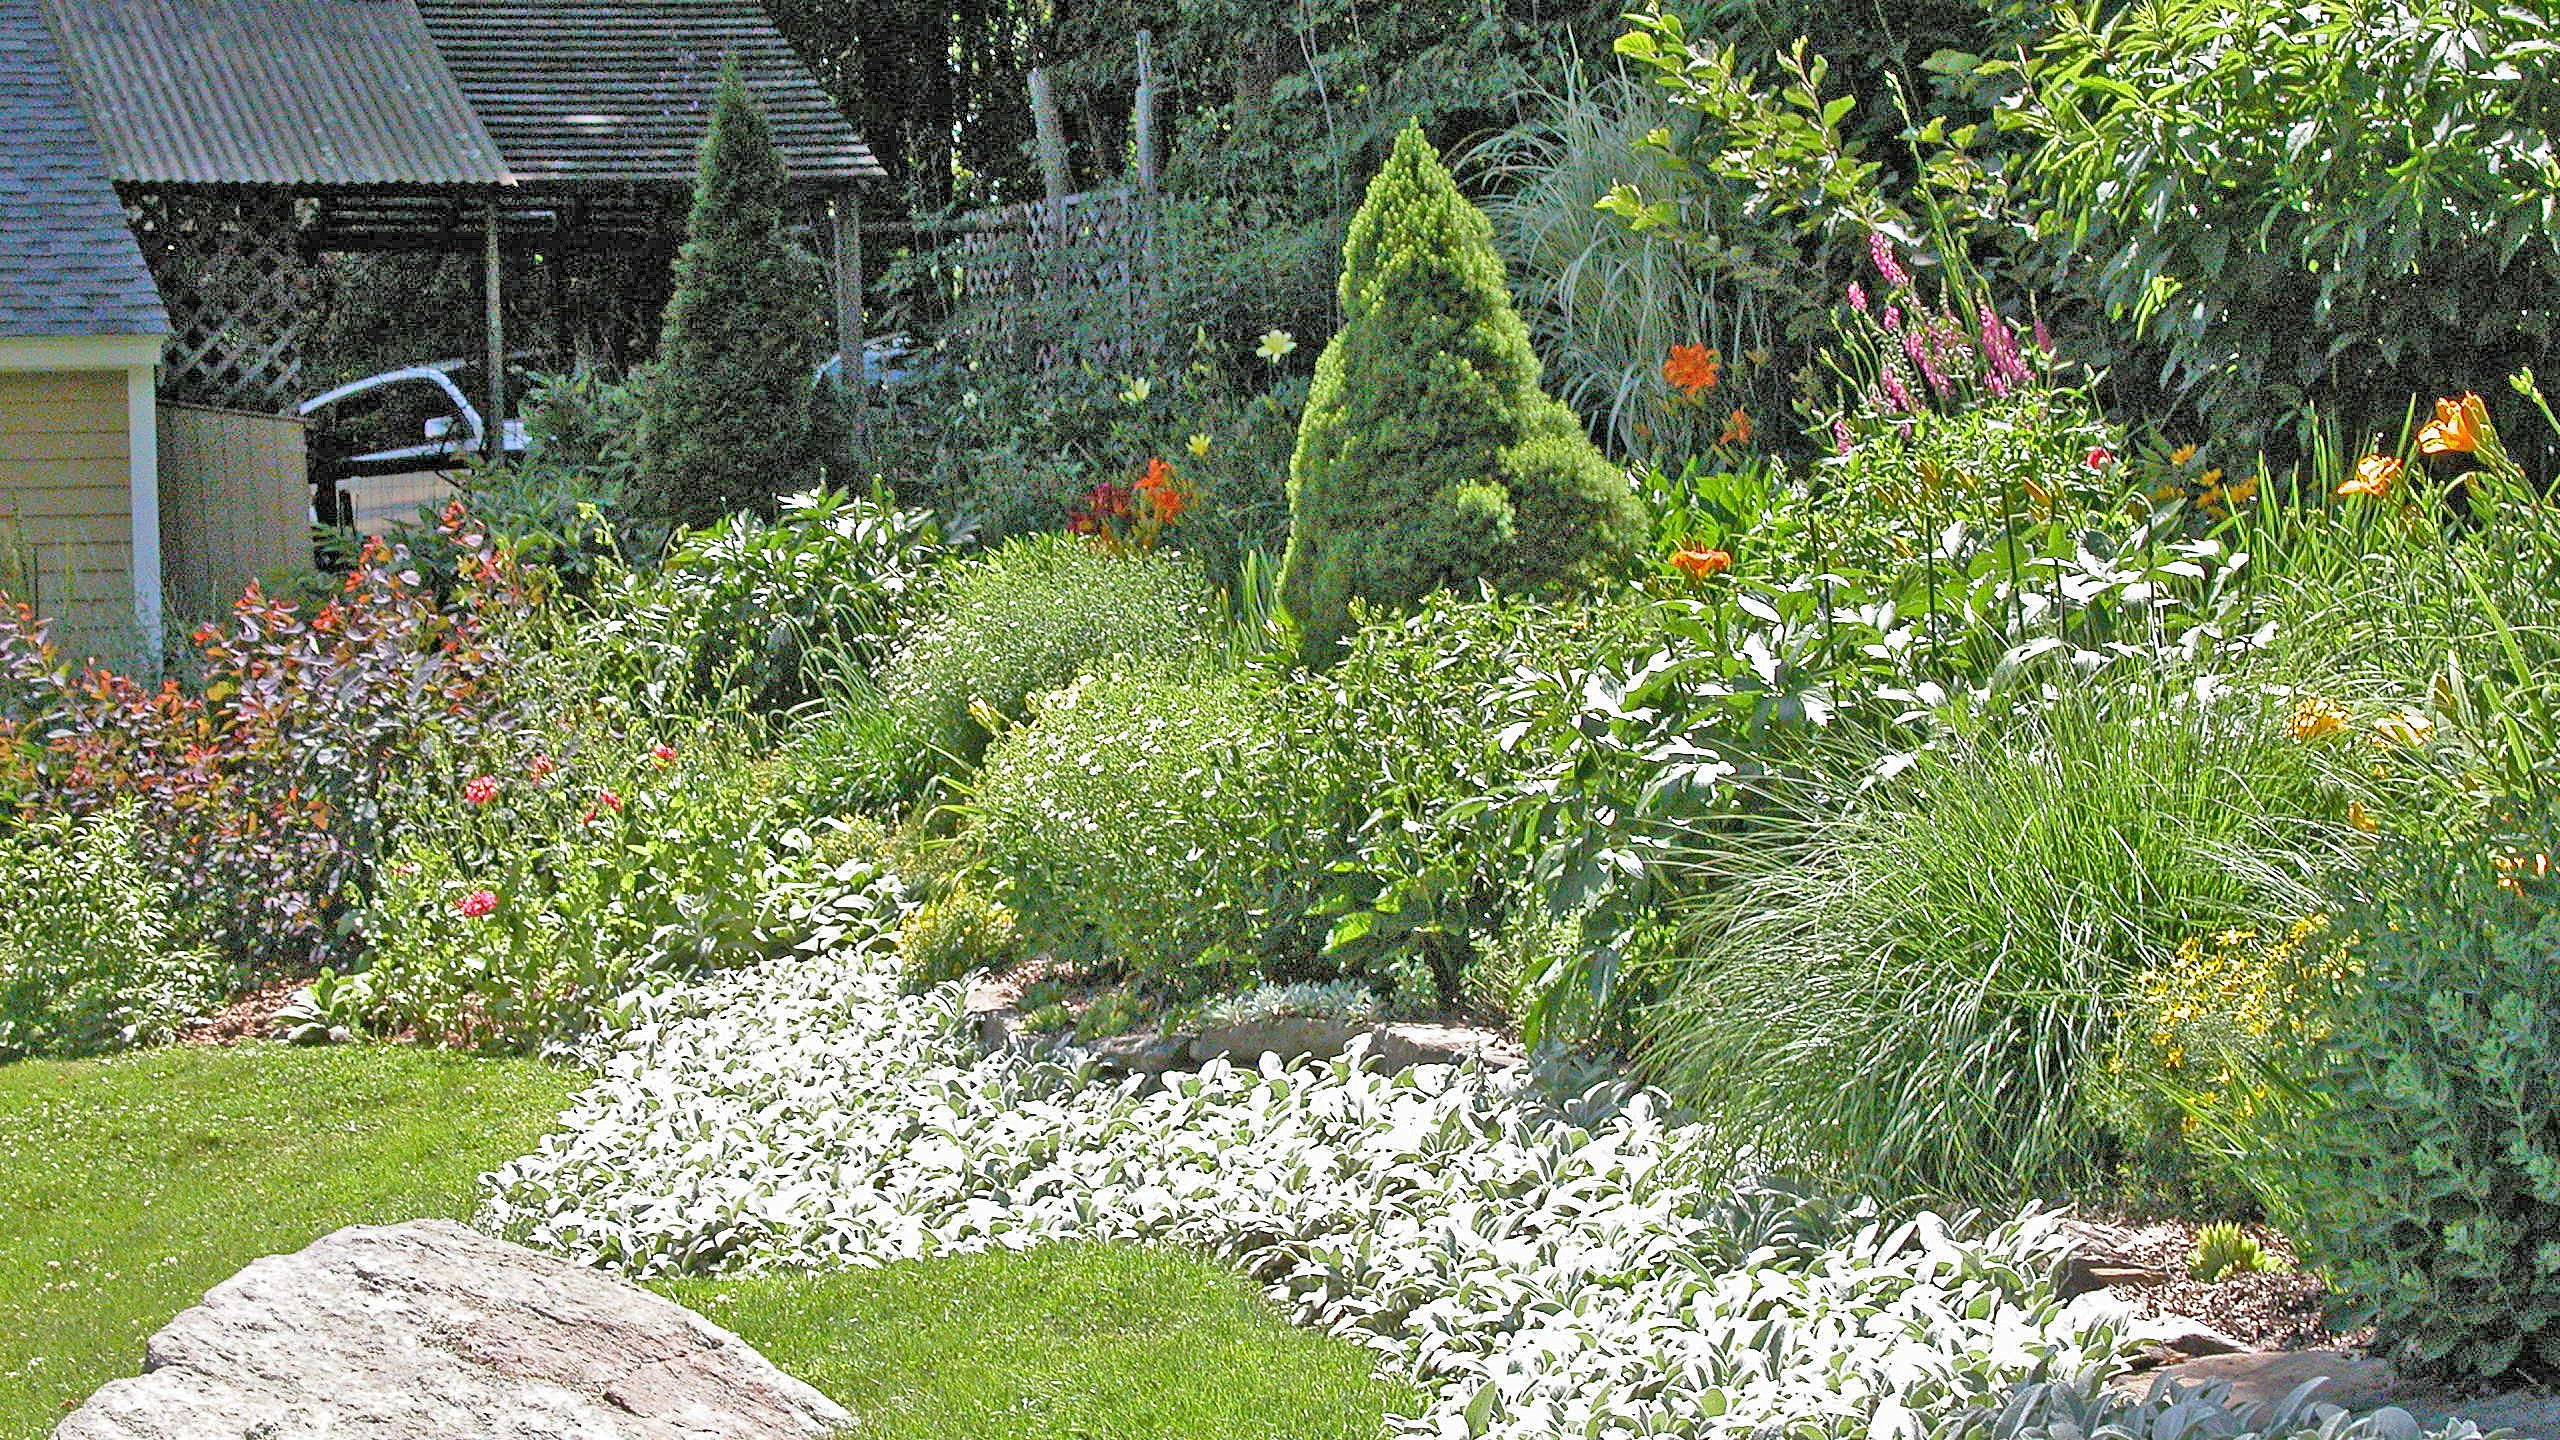 12 Hillside Landscaping Ideas To Maximize Your Yard